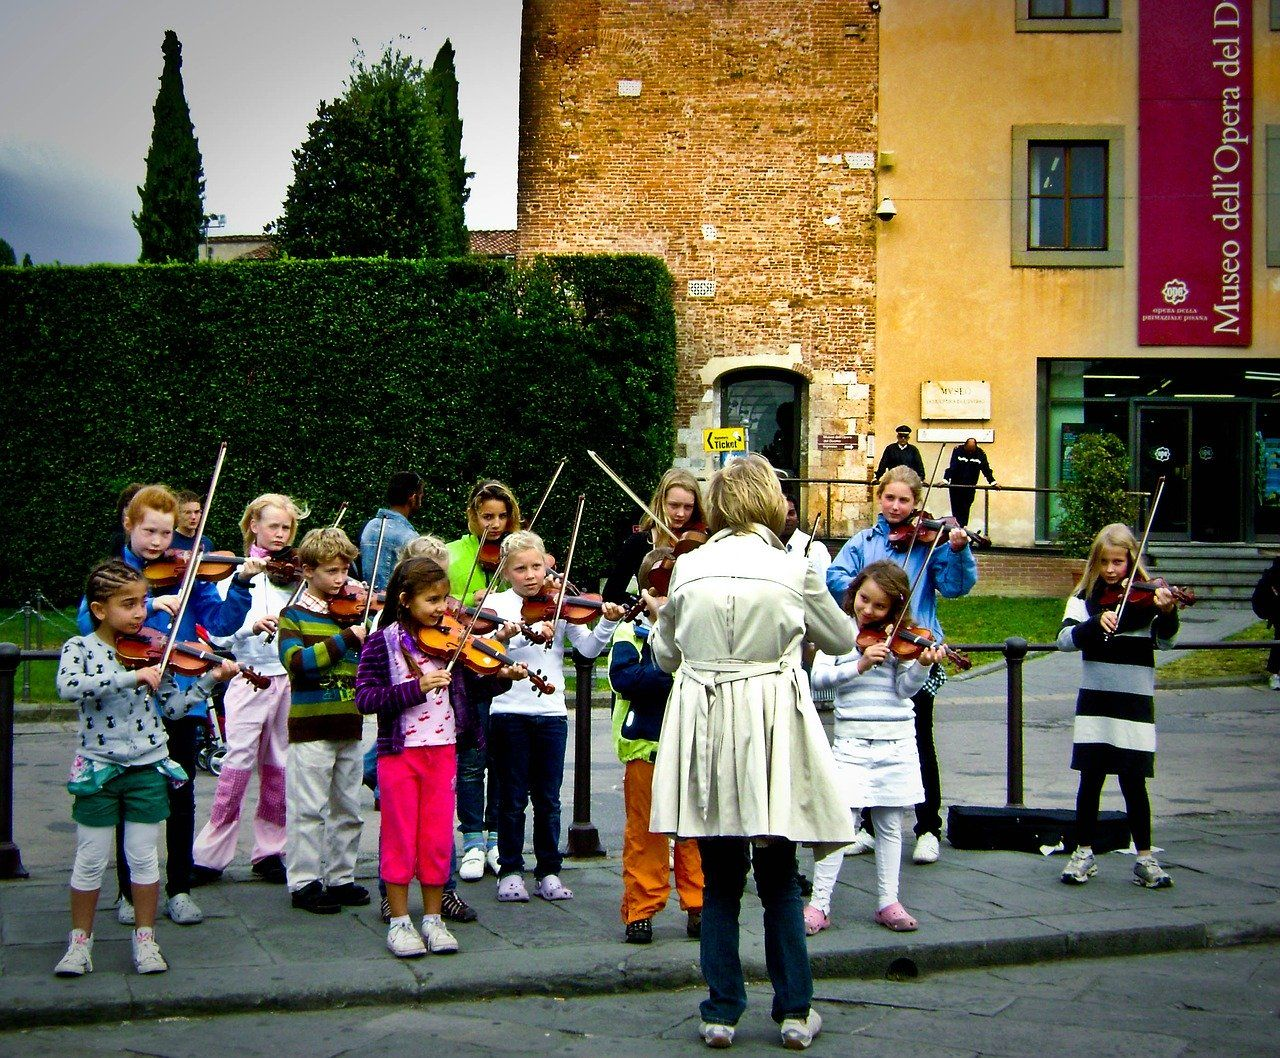 violin teacher leading a group of students